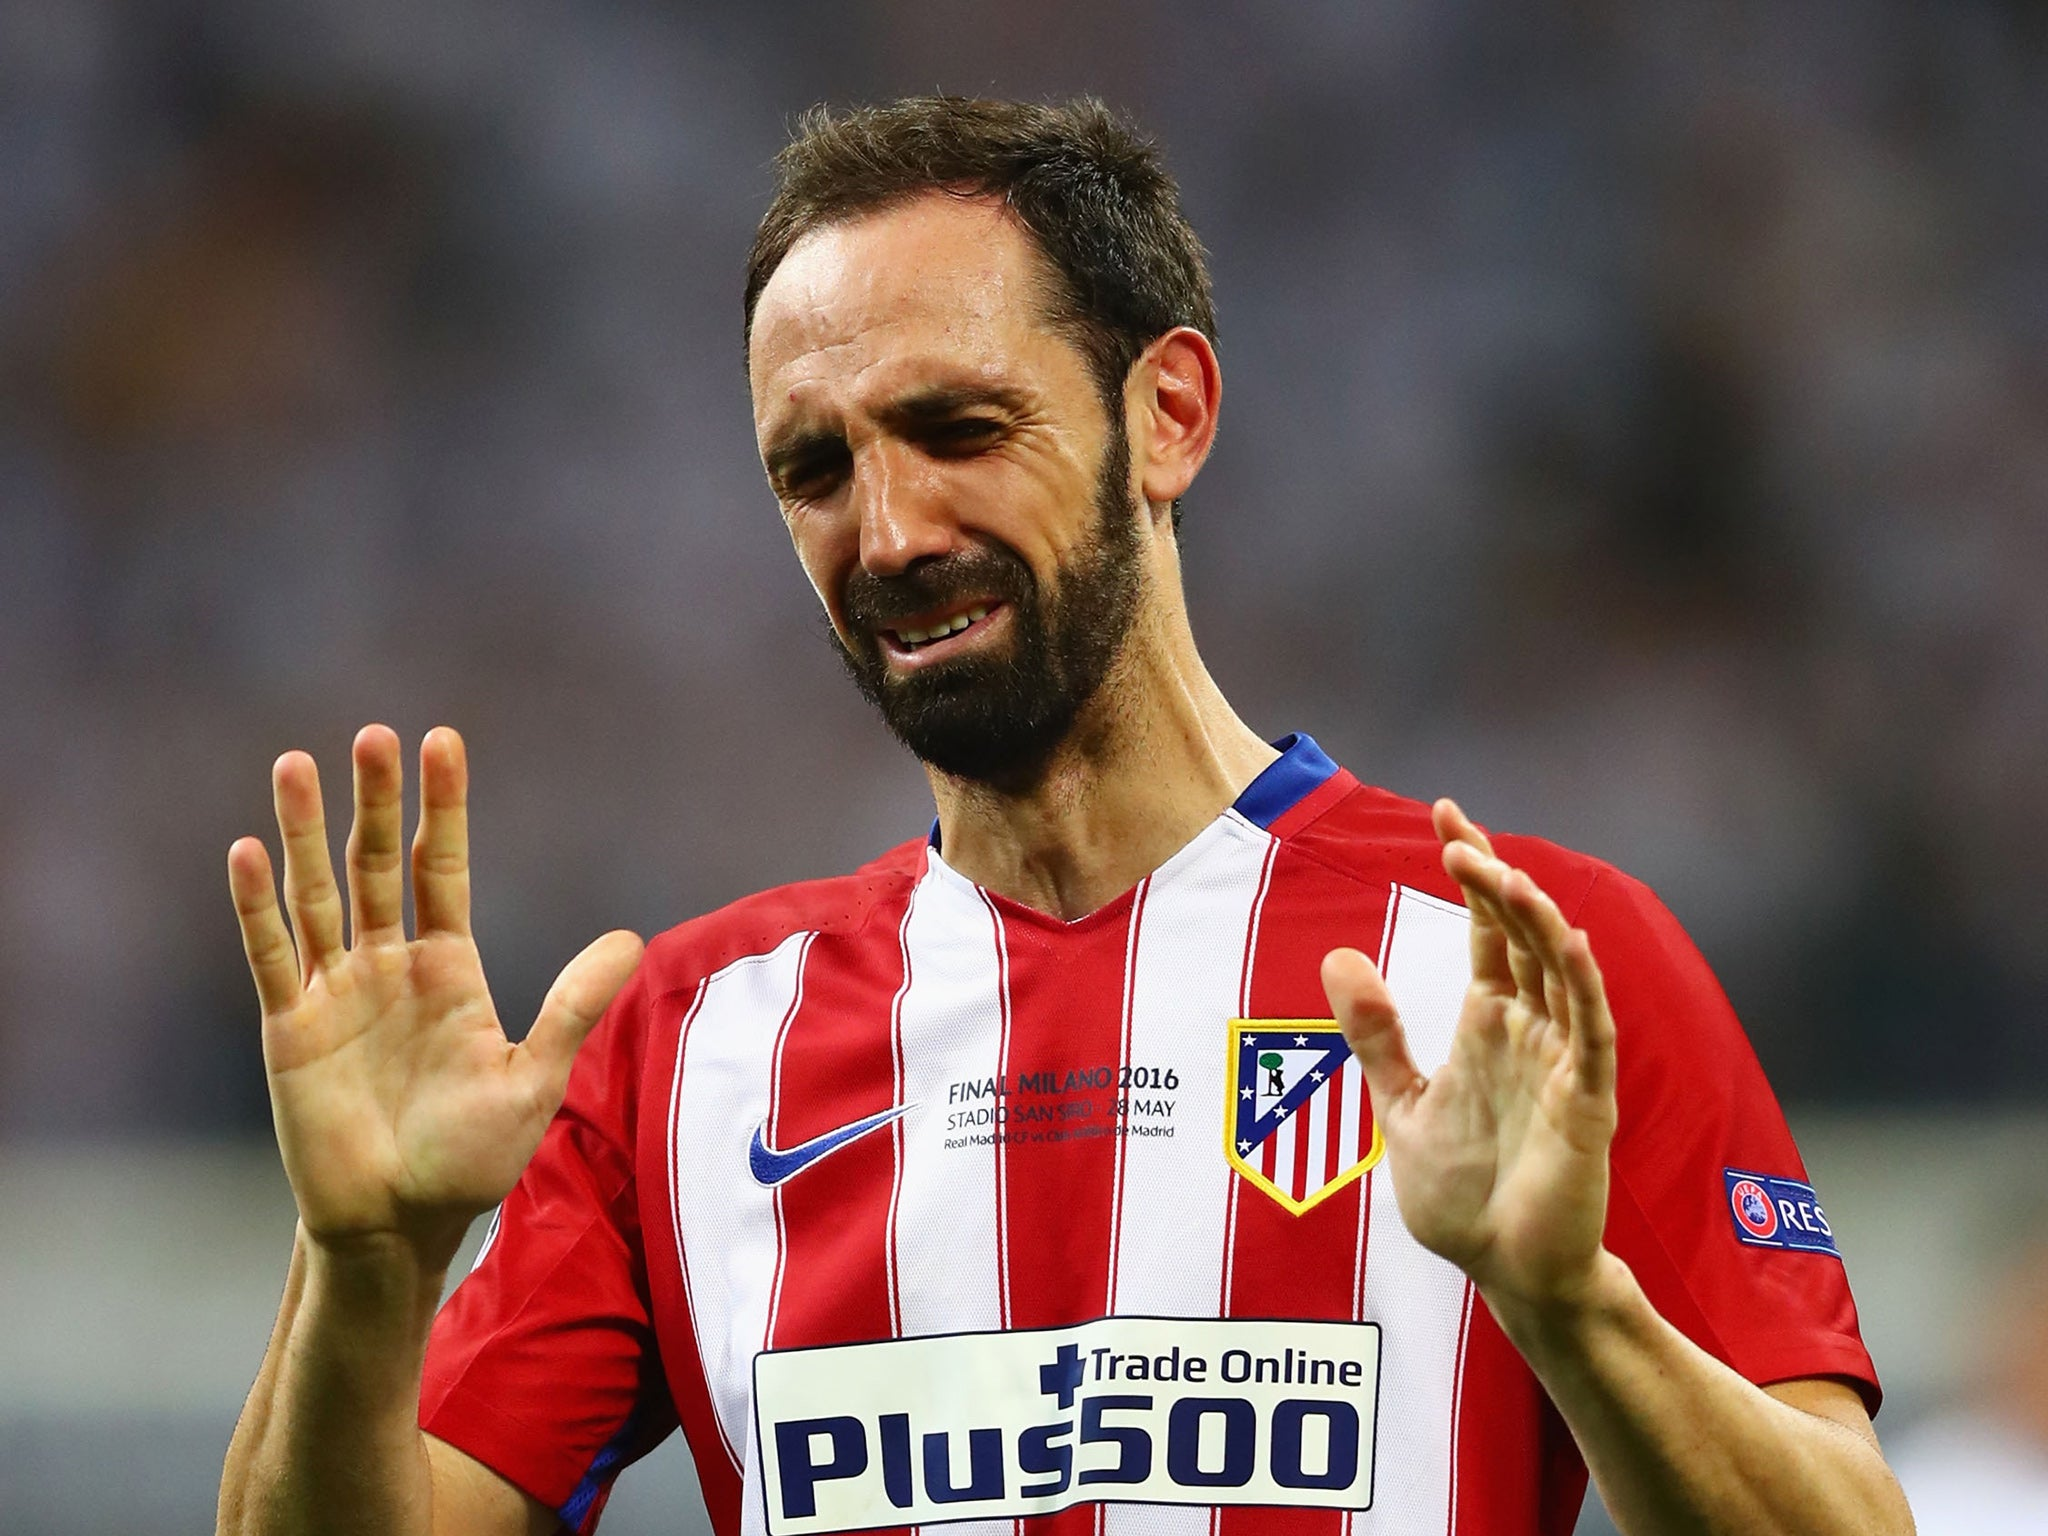 https://static.independent.co.uk/s3fs-public/thumbnails/image/2016/06/03/12/juanfran.jpg